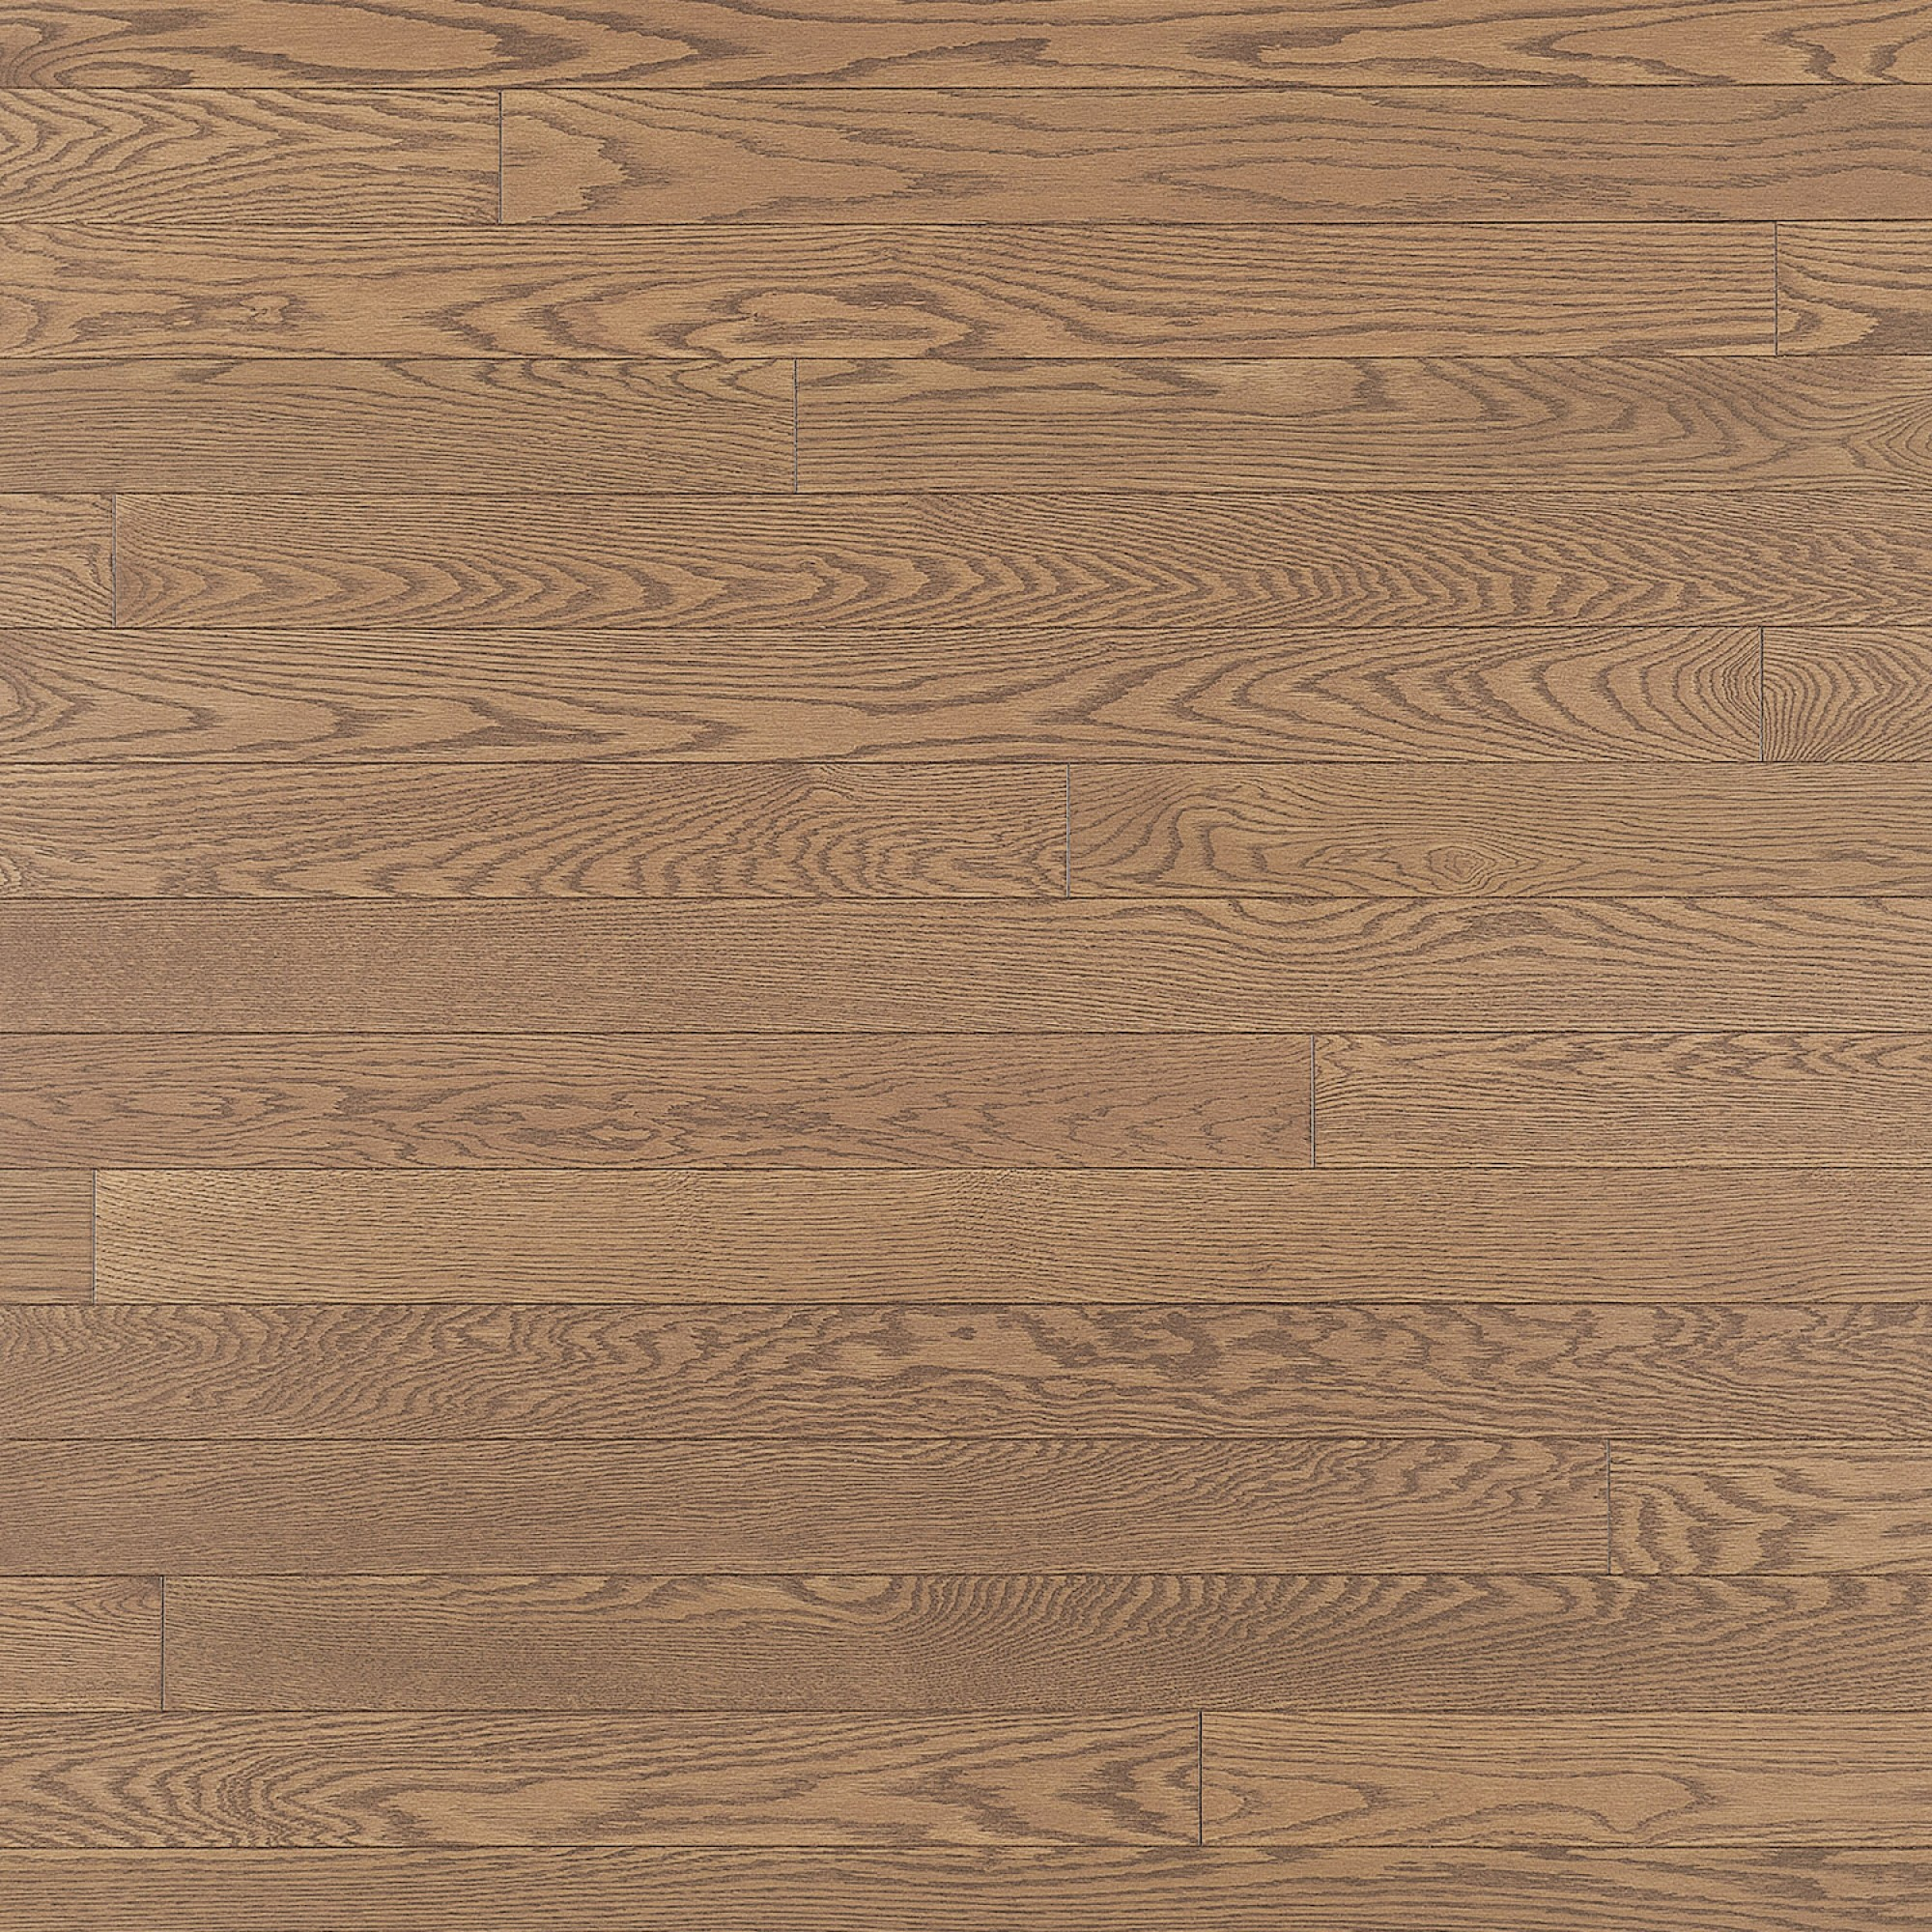 Mirage Engineered Hardwood Flooring 4866 Rupert Street